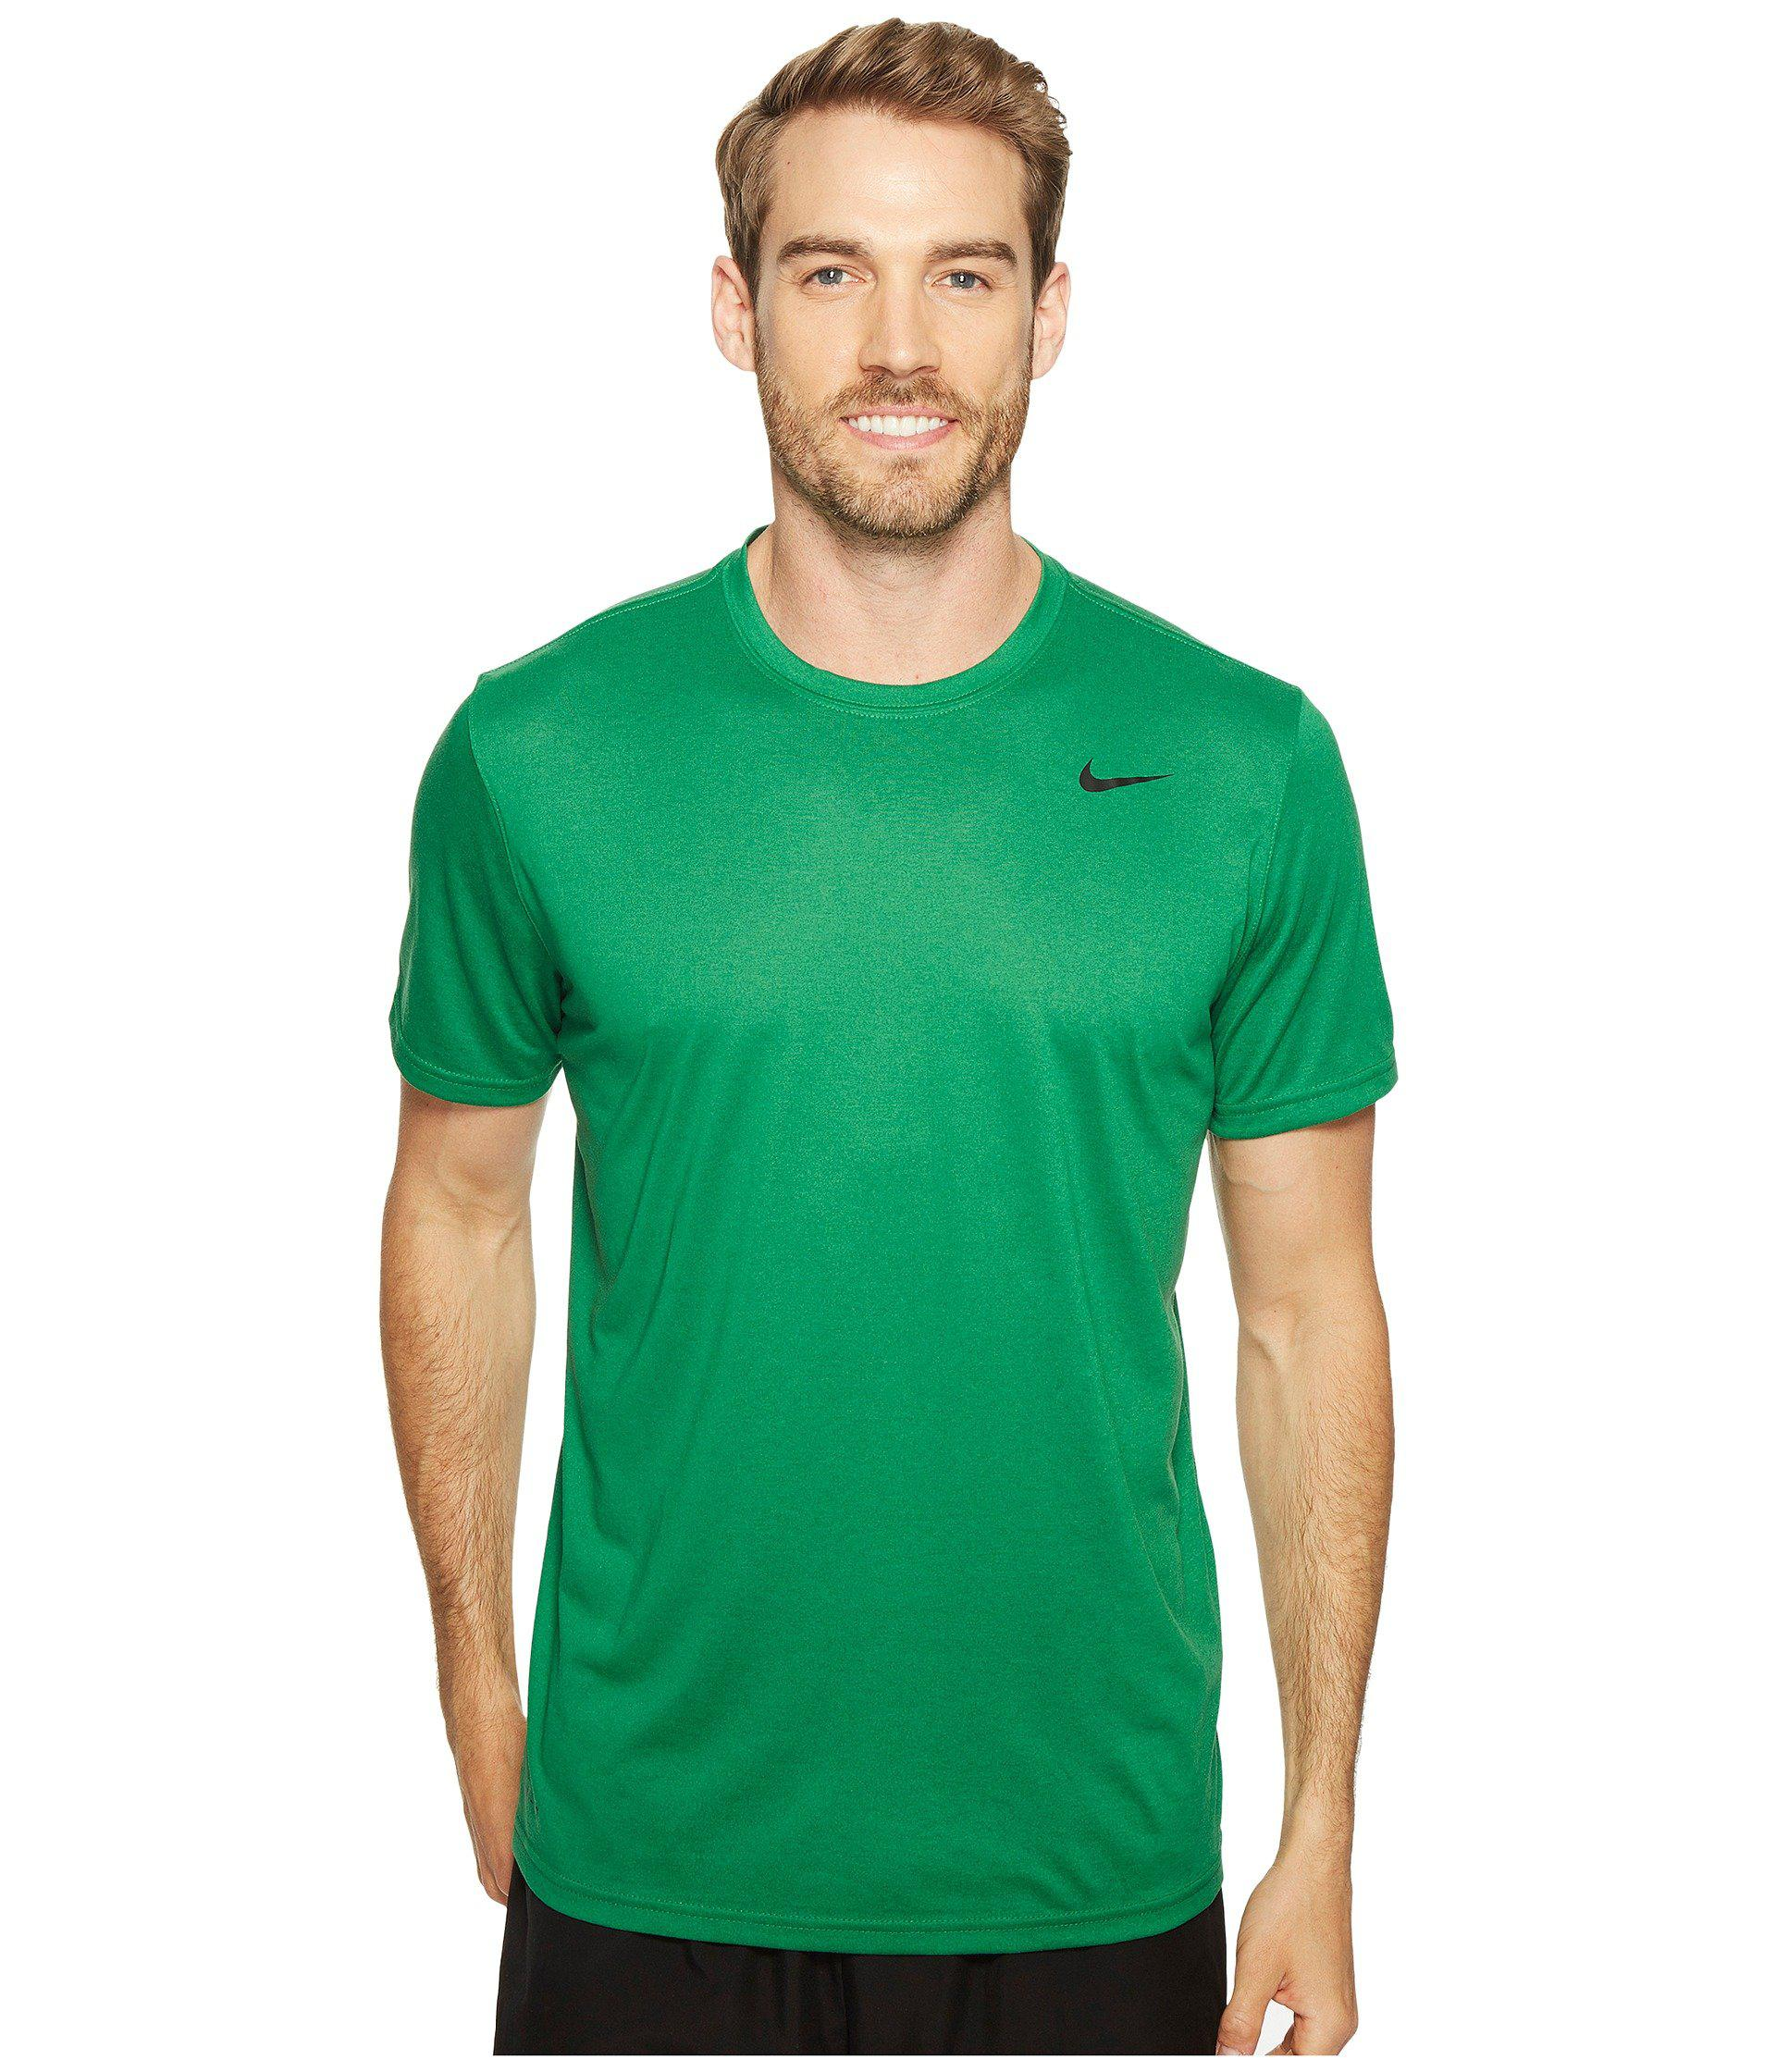 125c91d2a853 Lyst - Nike Legend 2.0 Short Sleeve Tee (light Game Royal Heather ...